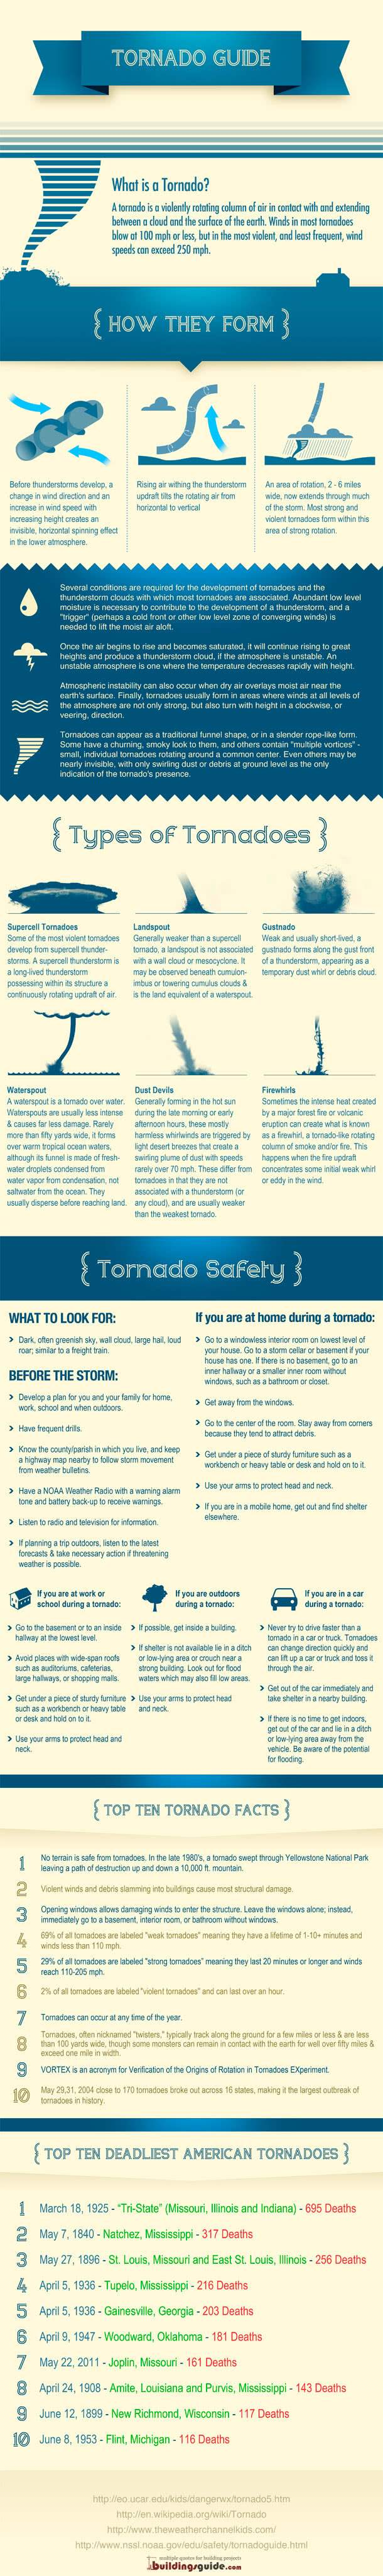 Infographic Tornado Guide Facts Safety Tips Information